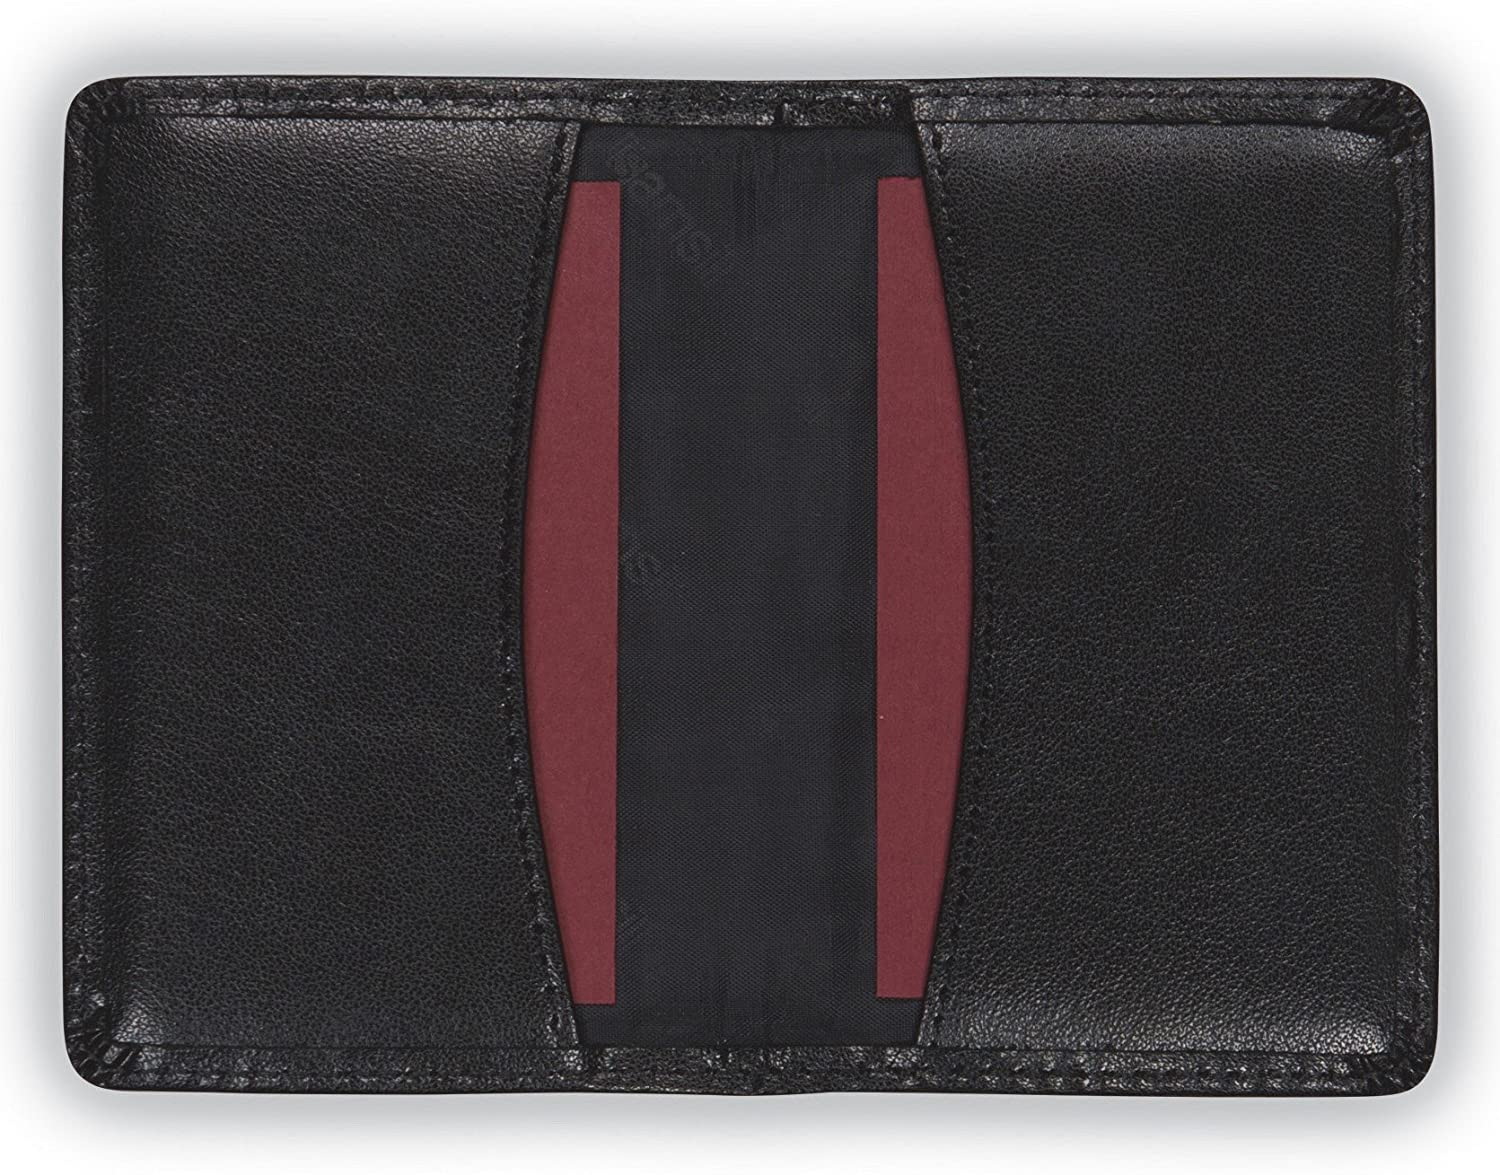 Amazon.com : Samsill Regal Leather Business Card Holder, Case ...